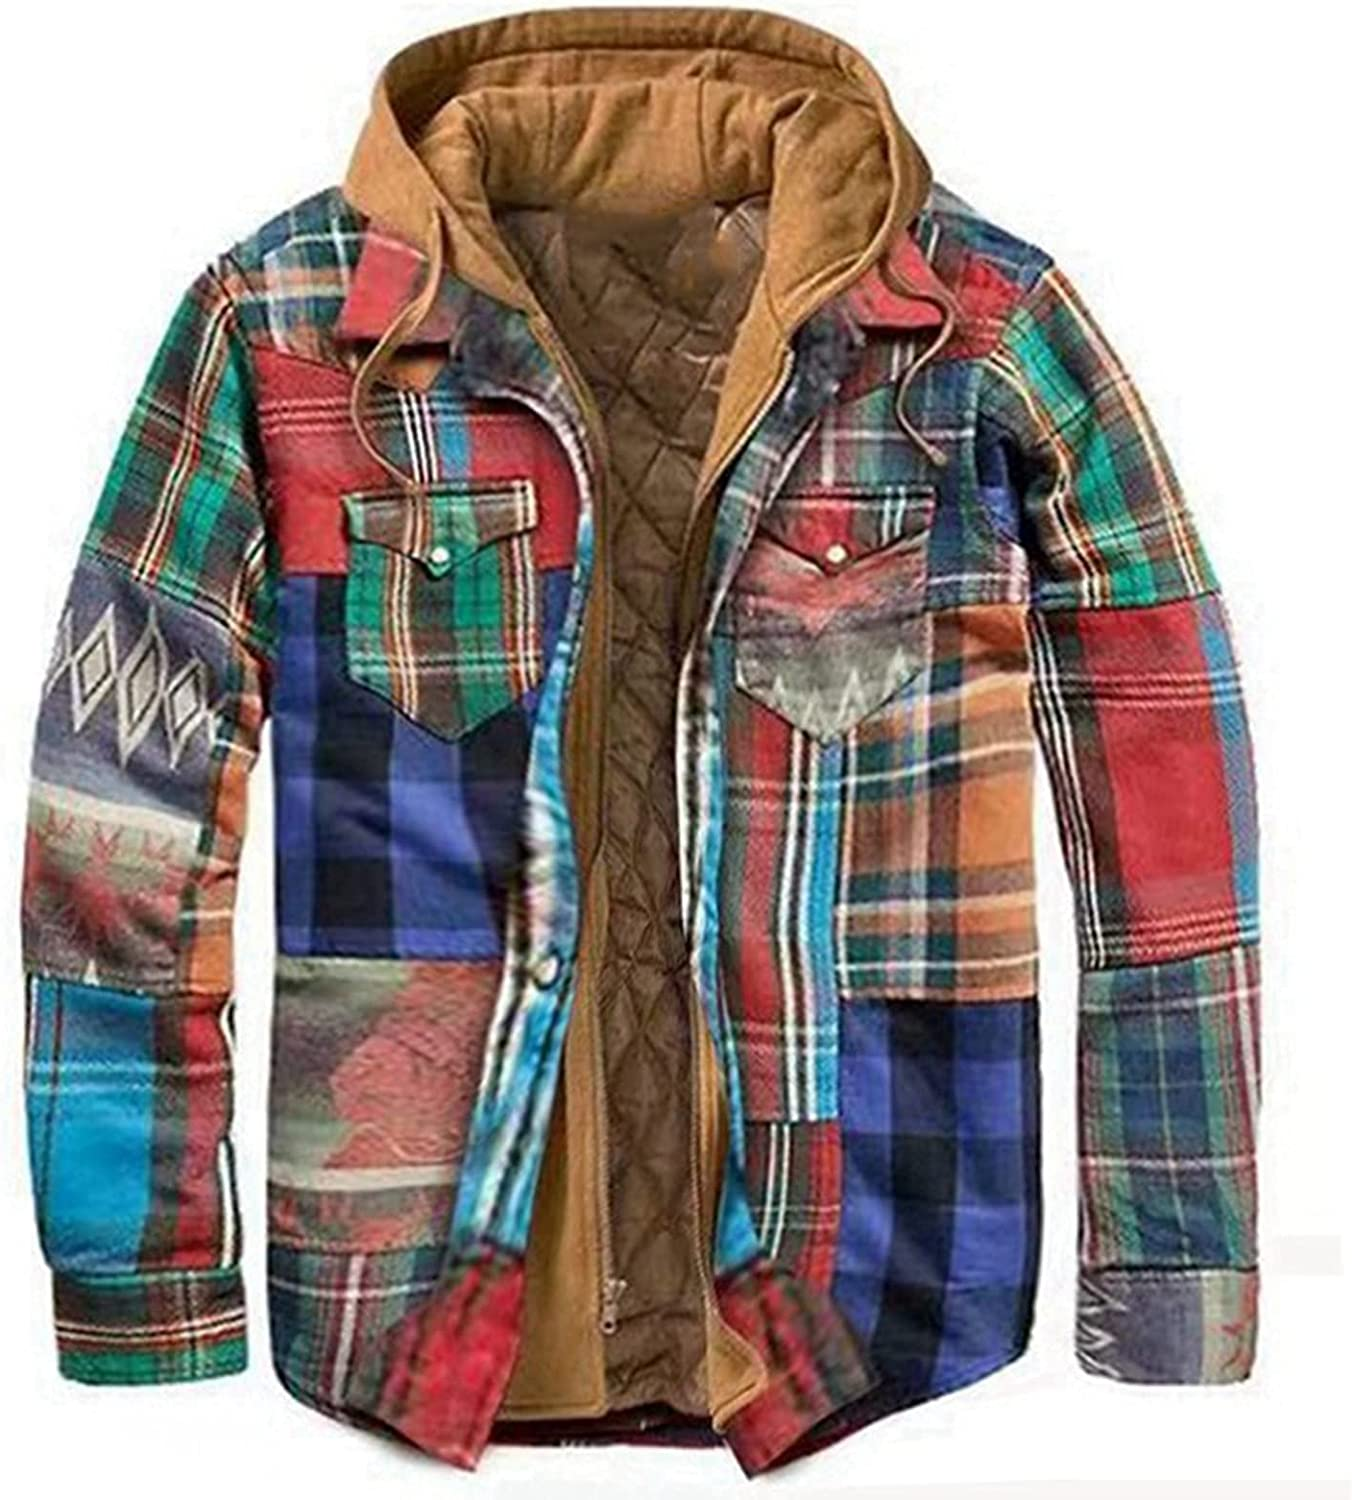 Men's Plaid Sweatshirts Casual Thick Zipper Hooded Jacket Loose Long Sleeve Pocketed Hoodies Lightweight Comfy Coat